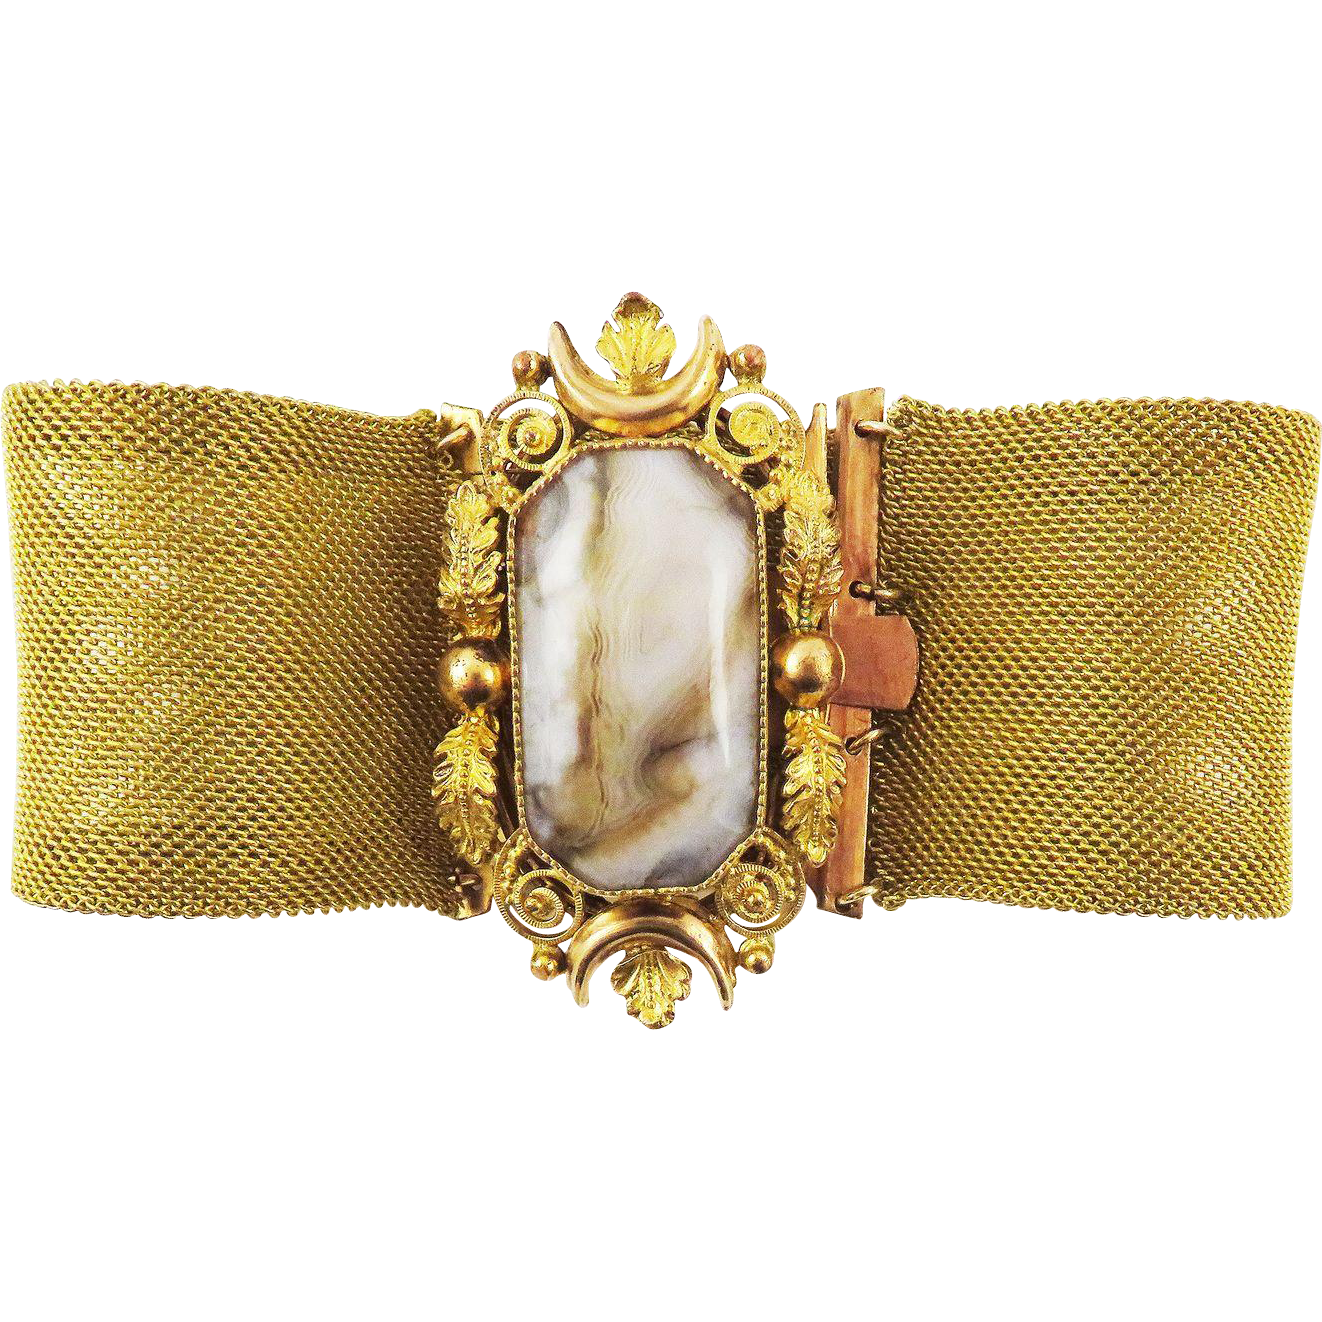 "EXTRA-LARGE 7 1/2"" Late Georgian Pinchbeck/Banded Agate Bracelet, c.1830!"